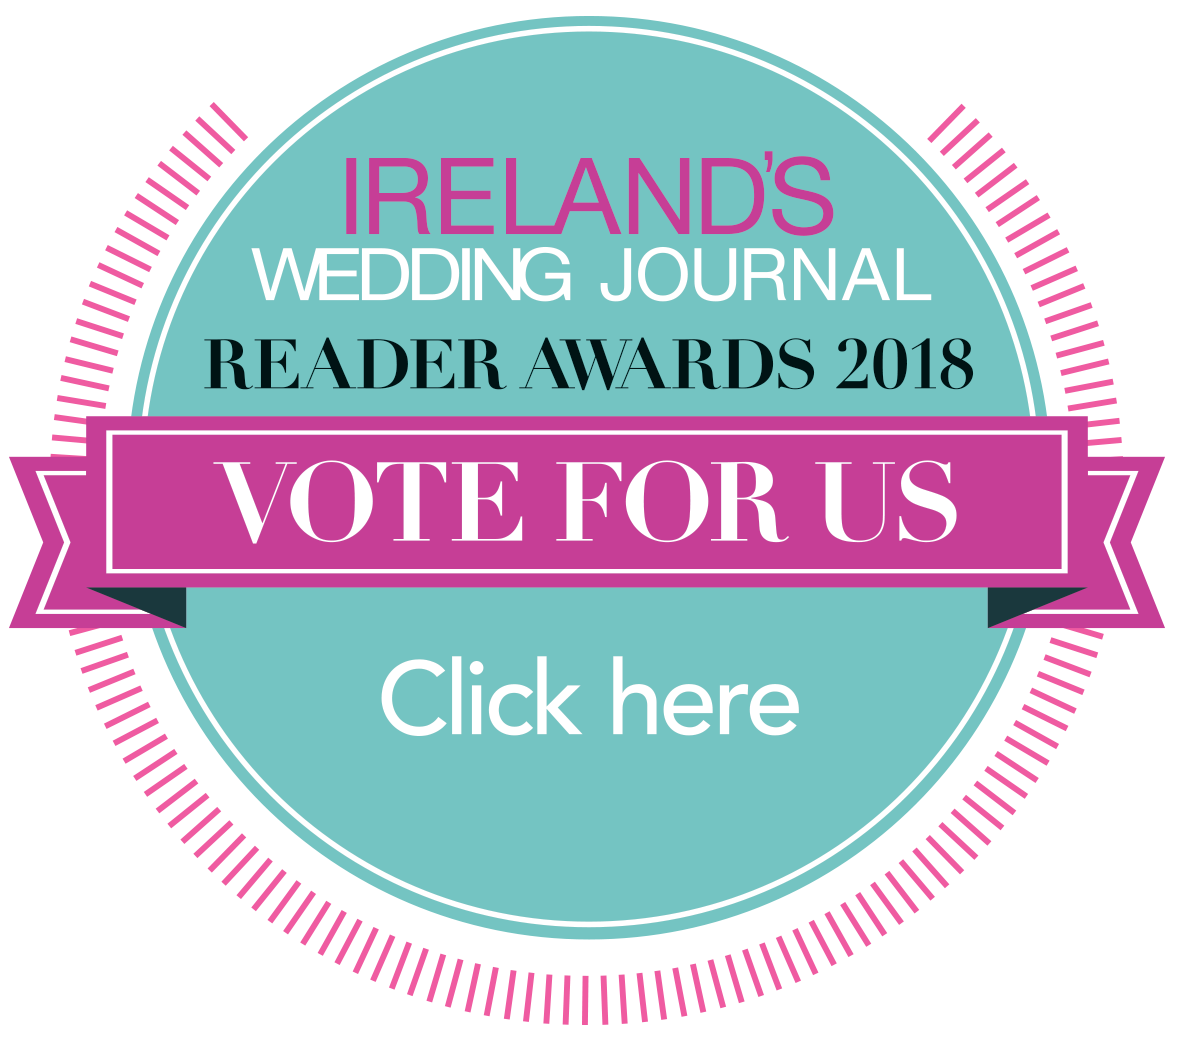 WeddingJournalOnline.com Reader Awards 2018